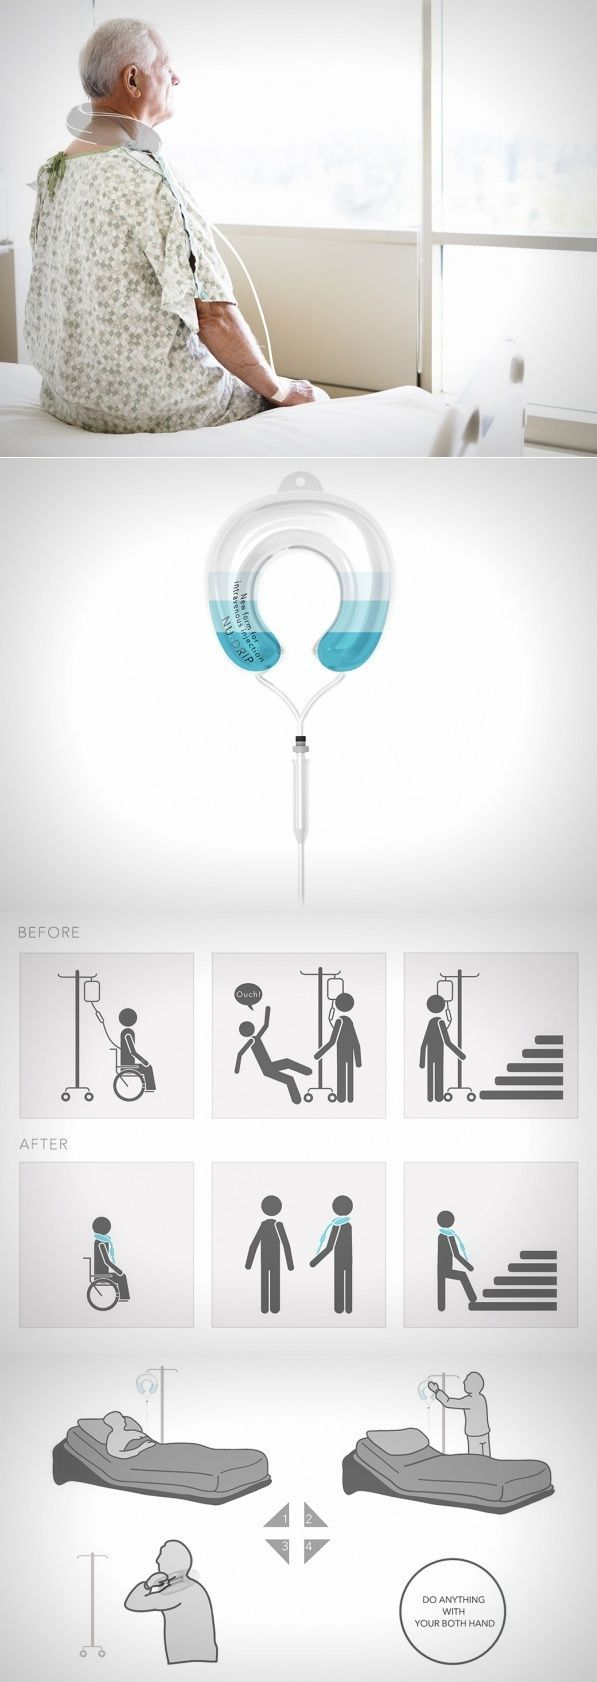 The Nu-Drip saline bag design is so well designed in such a blatantly obvious wa